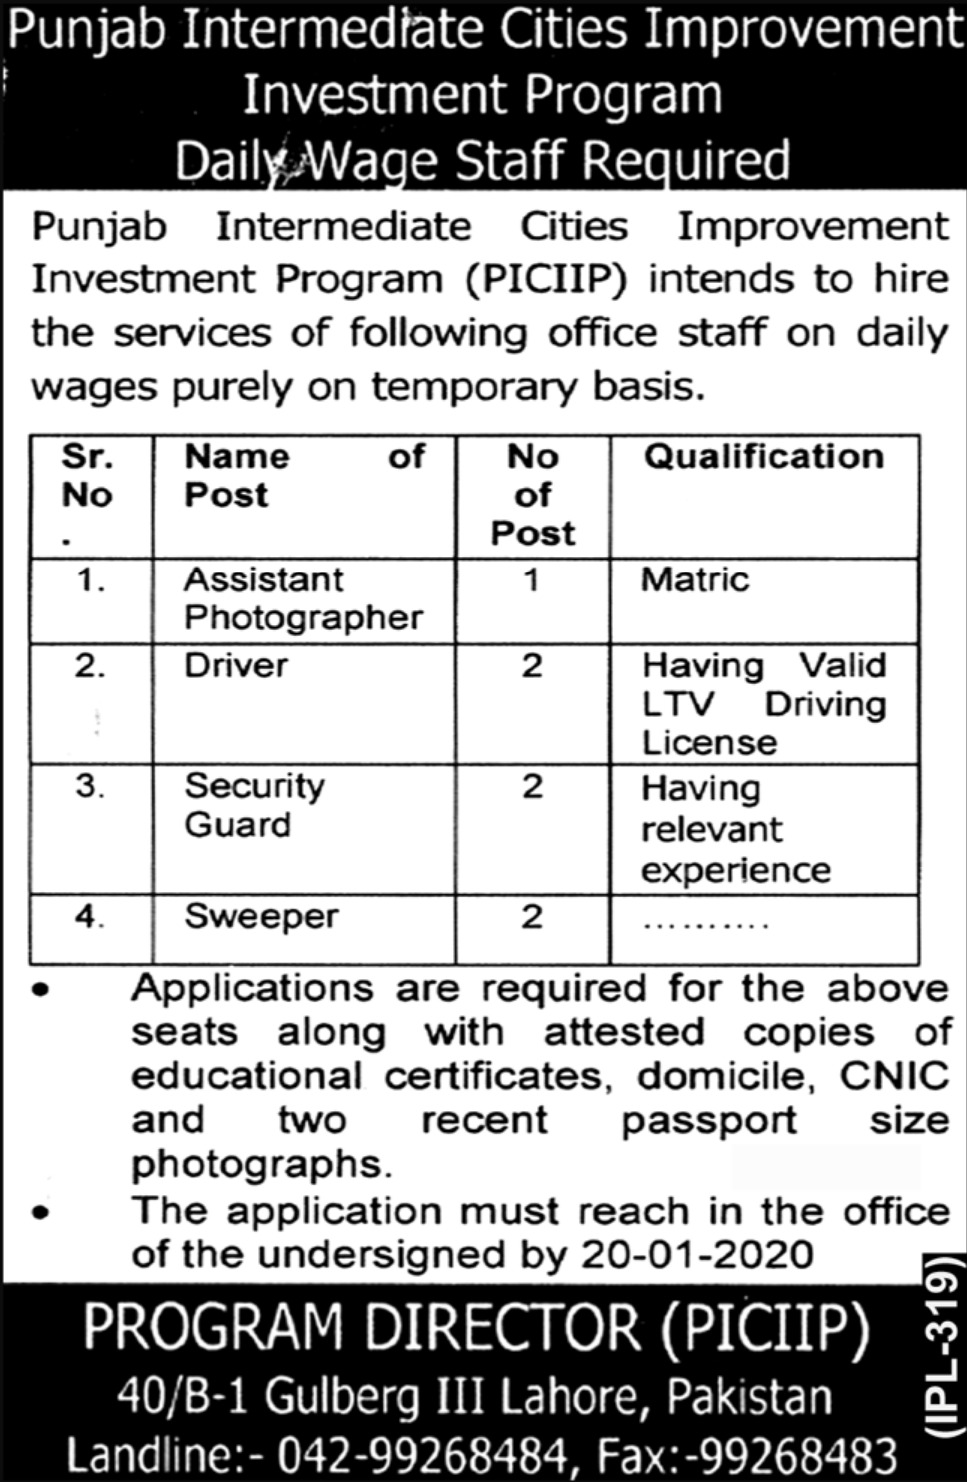 Punjab Intermediate Cities Improvement Investment Program Jobs 2020